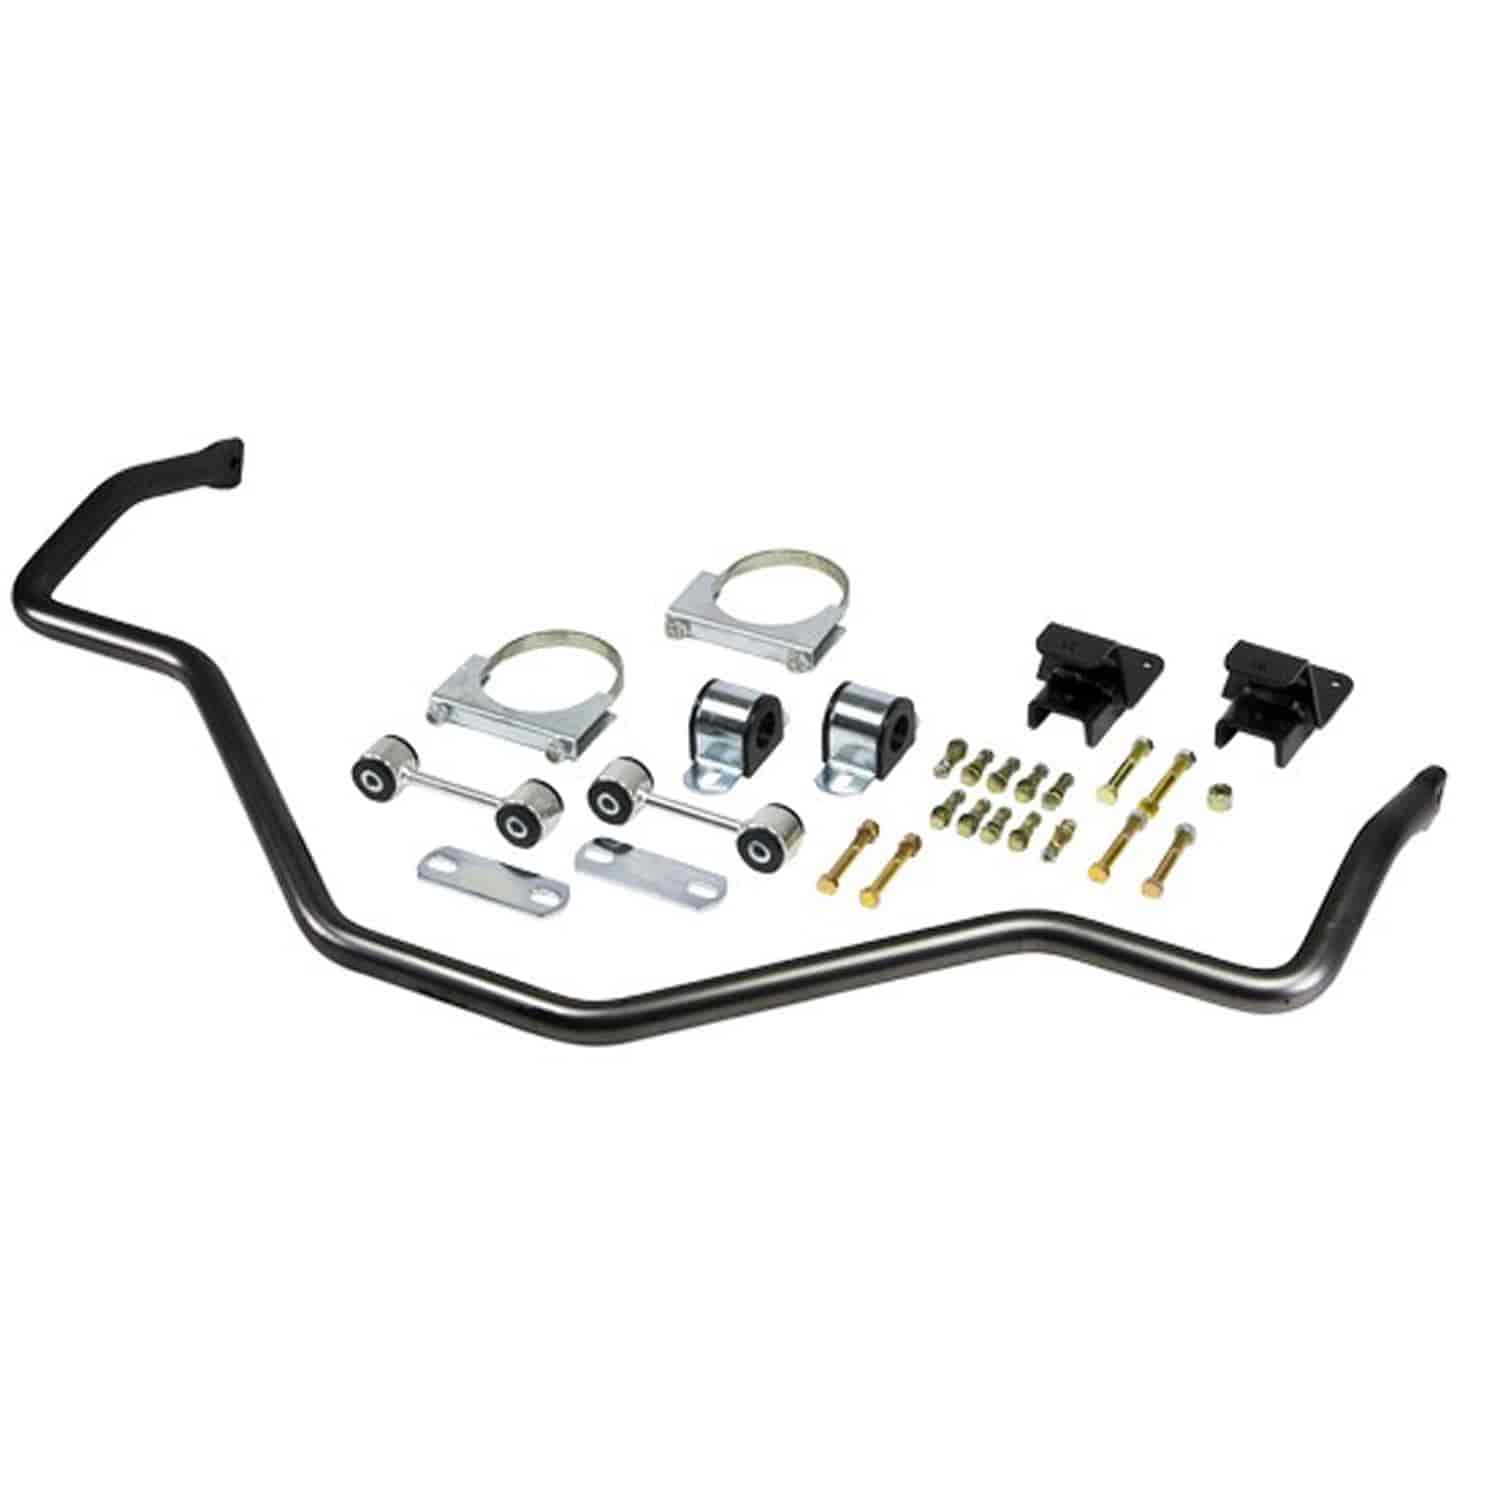 Belltech Rear Sway Bar Kit For Chevy